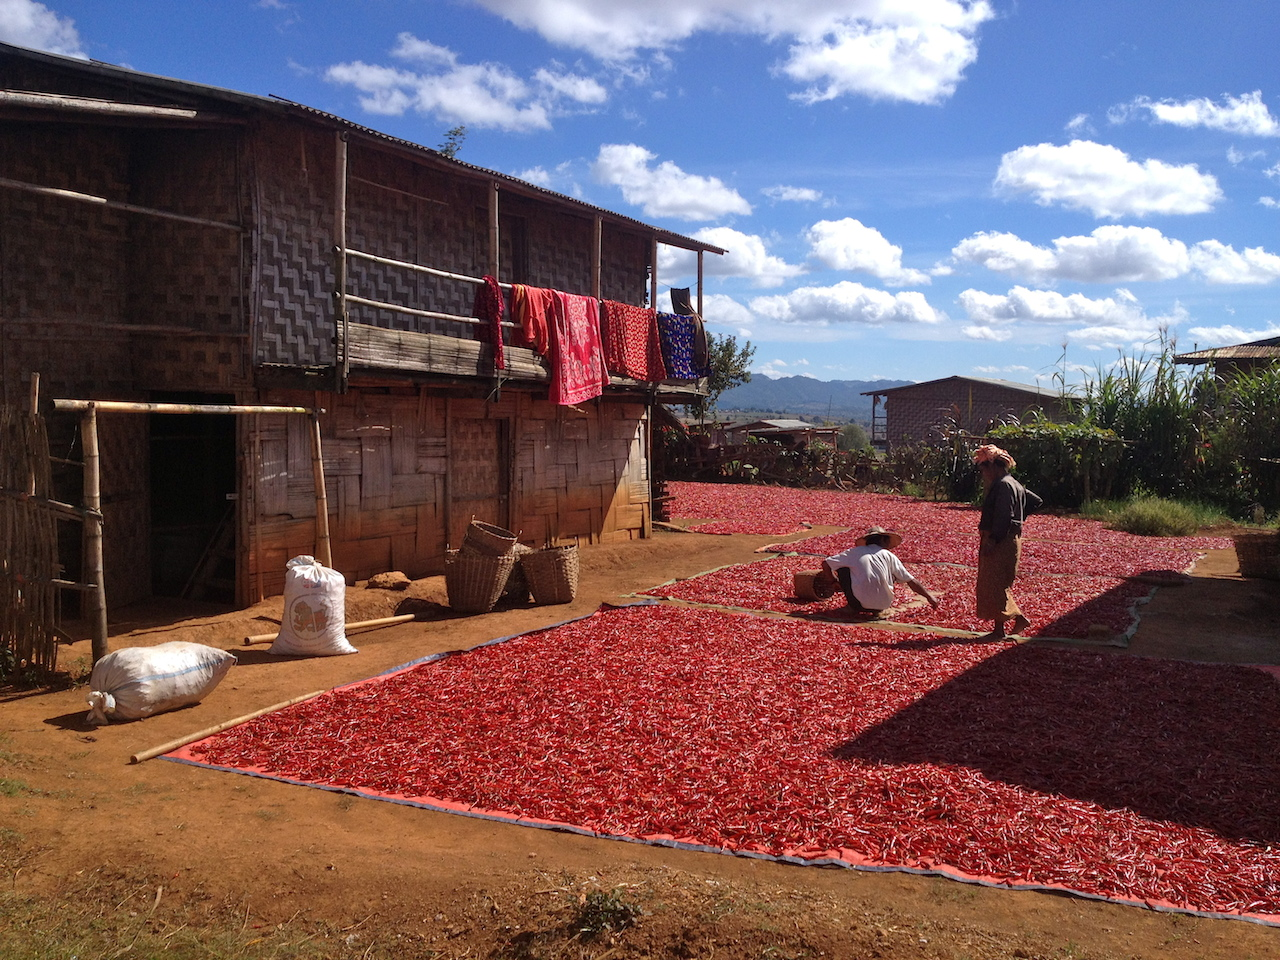 One of the main income for the Palaung villages is chili farming